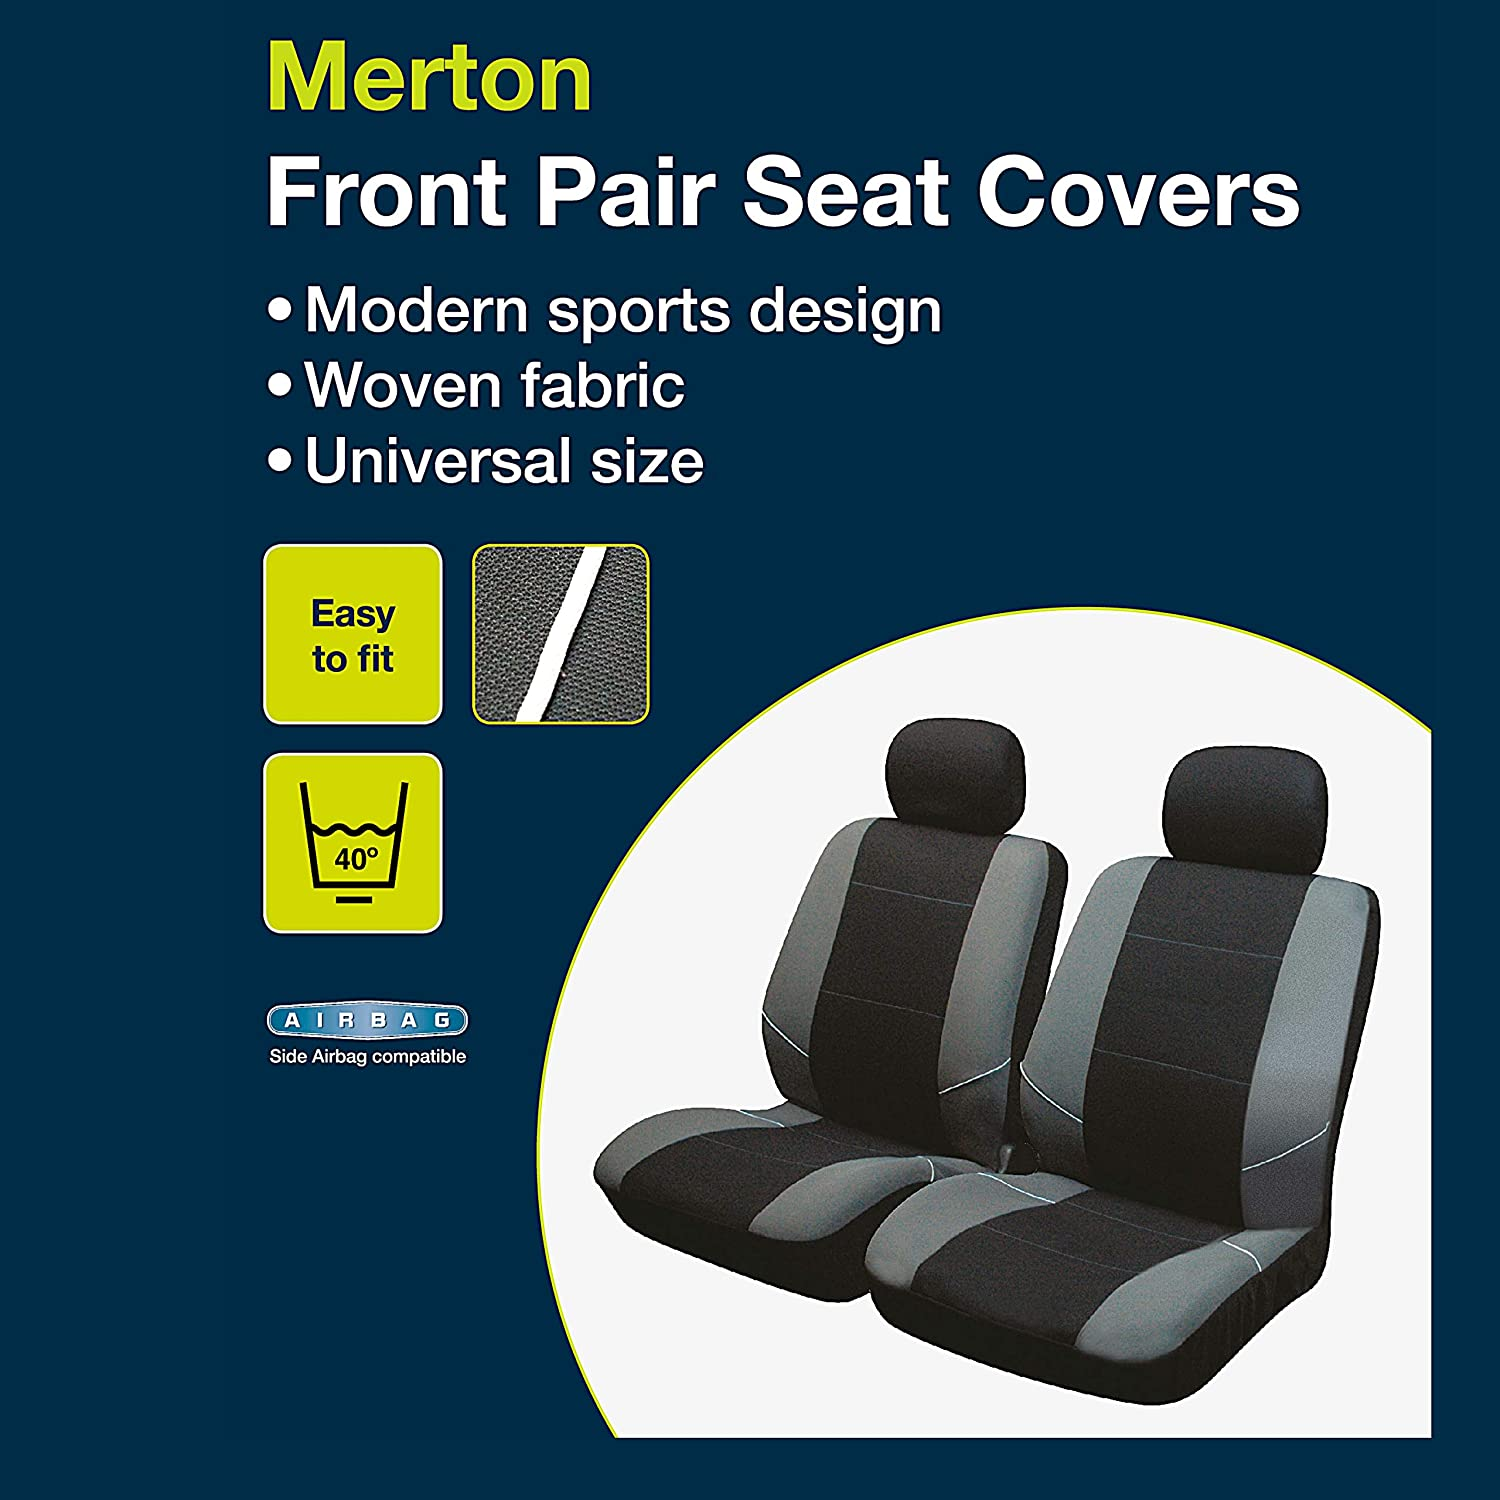 Sakura Merton Black//Grey Seat and Headrest Covers BY0802 Full Set Universal Fit Elasticated Hems Side Airbag Compatible Machine Washable